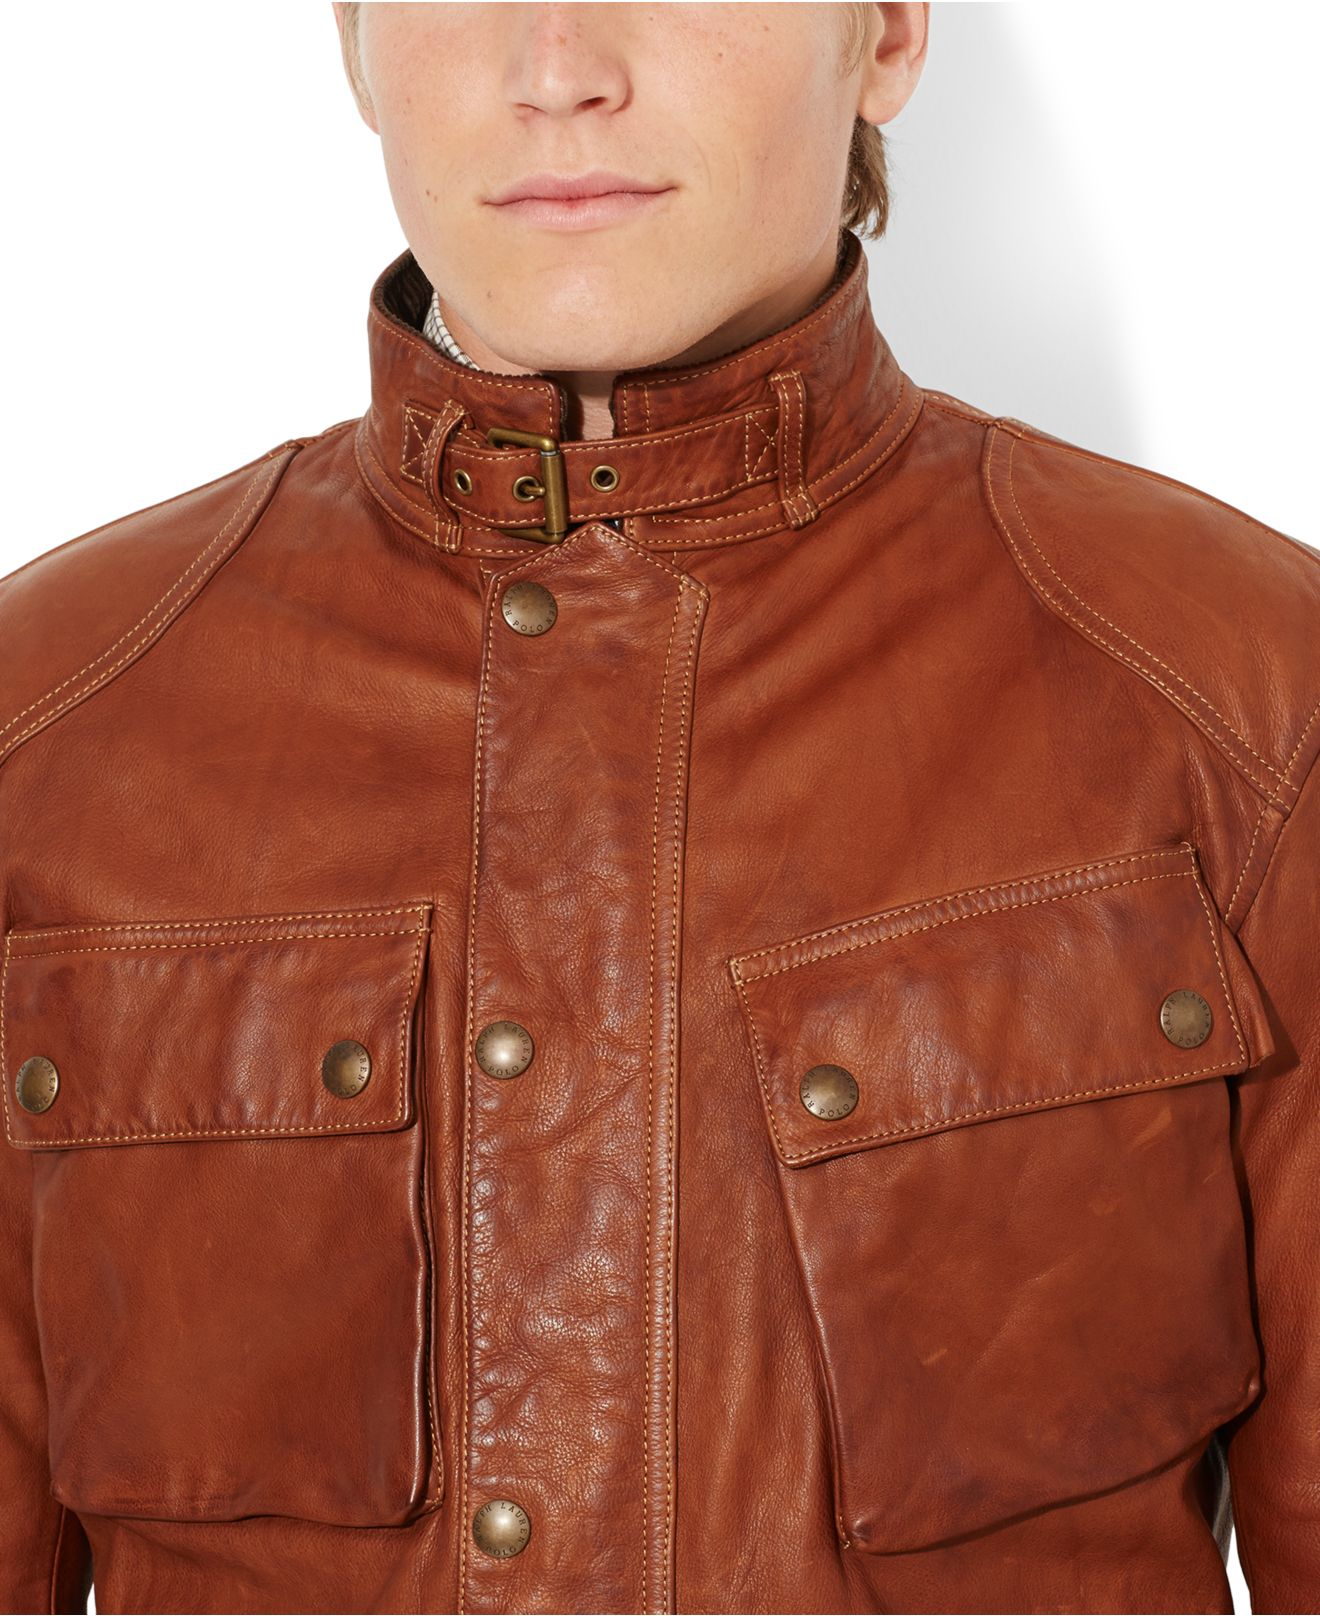 Lyst - Polo Ralph Lauren Southbury Leather Bike Jacket in Brown for Men 8ba97ebd94d74